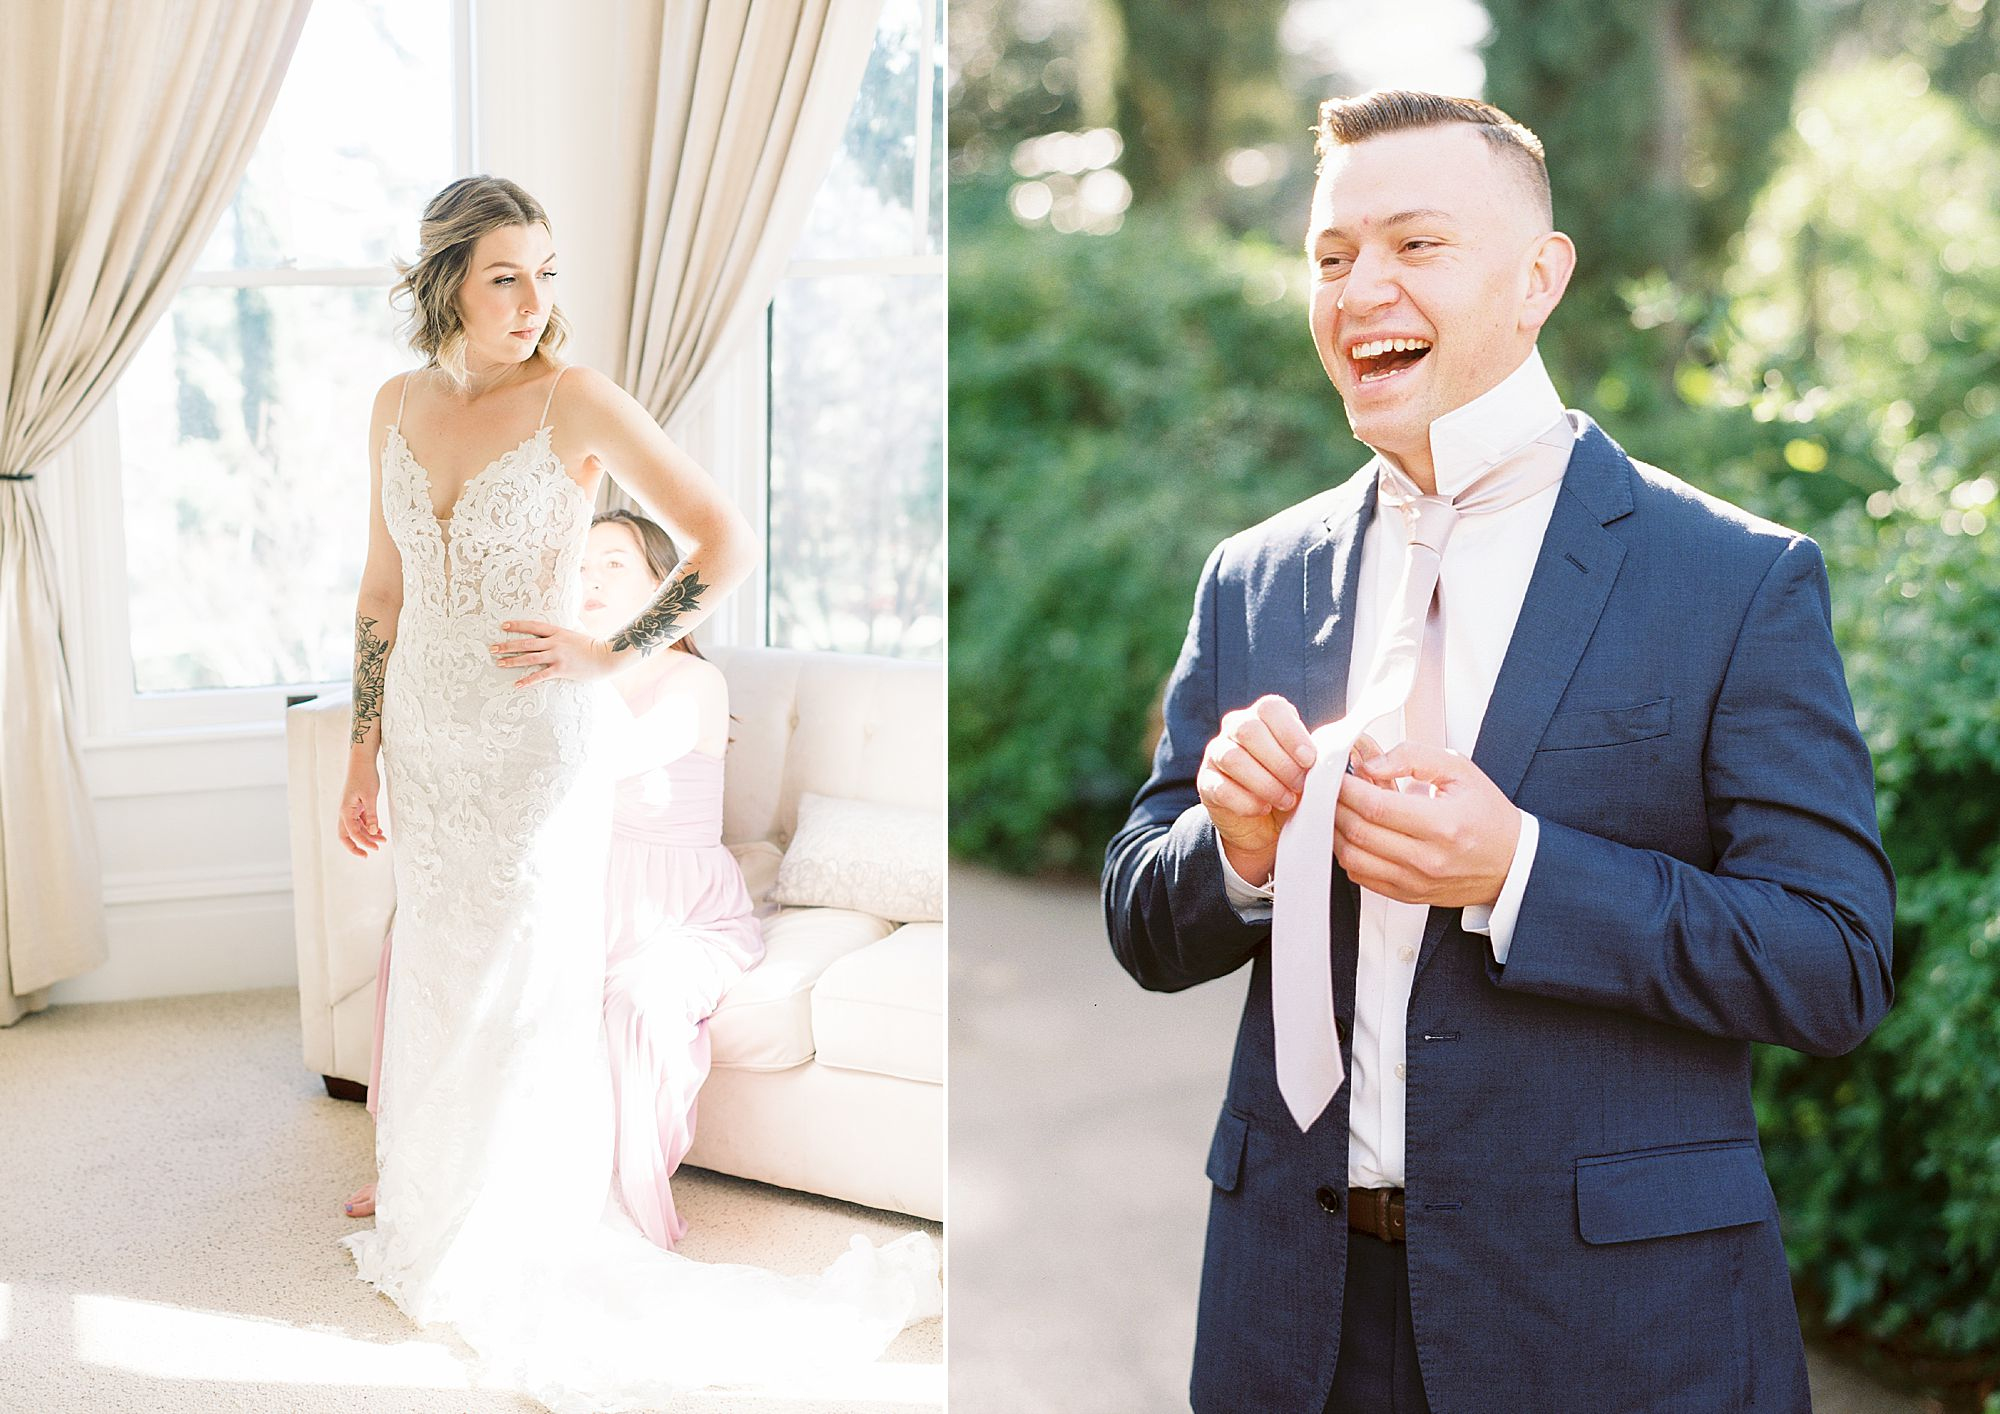 Inn at Park Winters Wedding - Lindsay and Shane - Ashley Baumgartner - Park Winters Wedding Photographer - Sacramento Wedding Photographer_0011.jpg